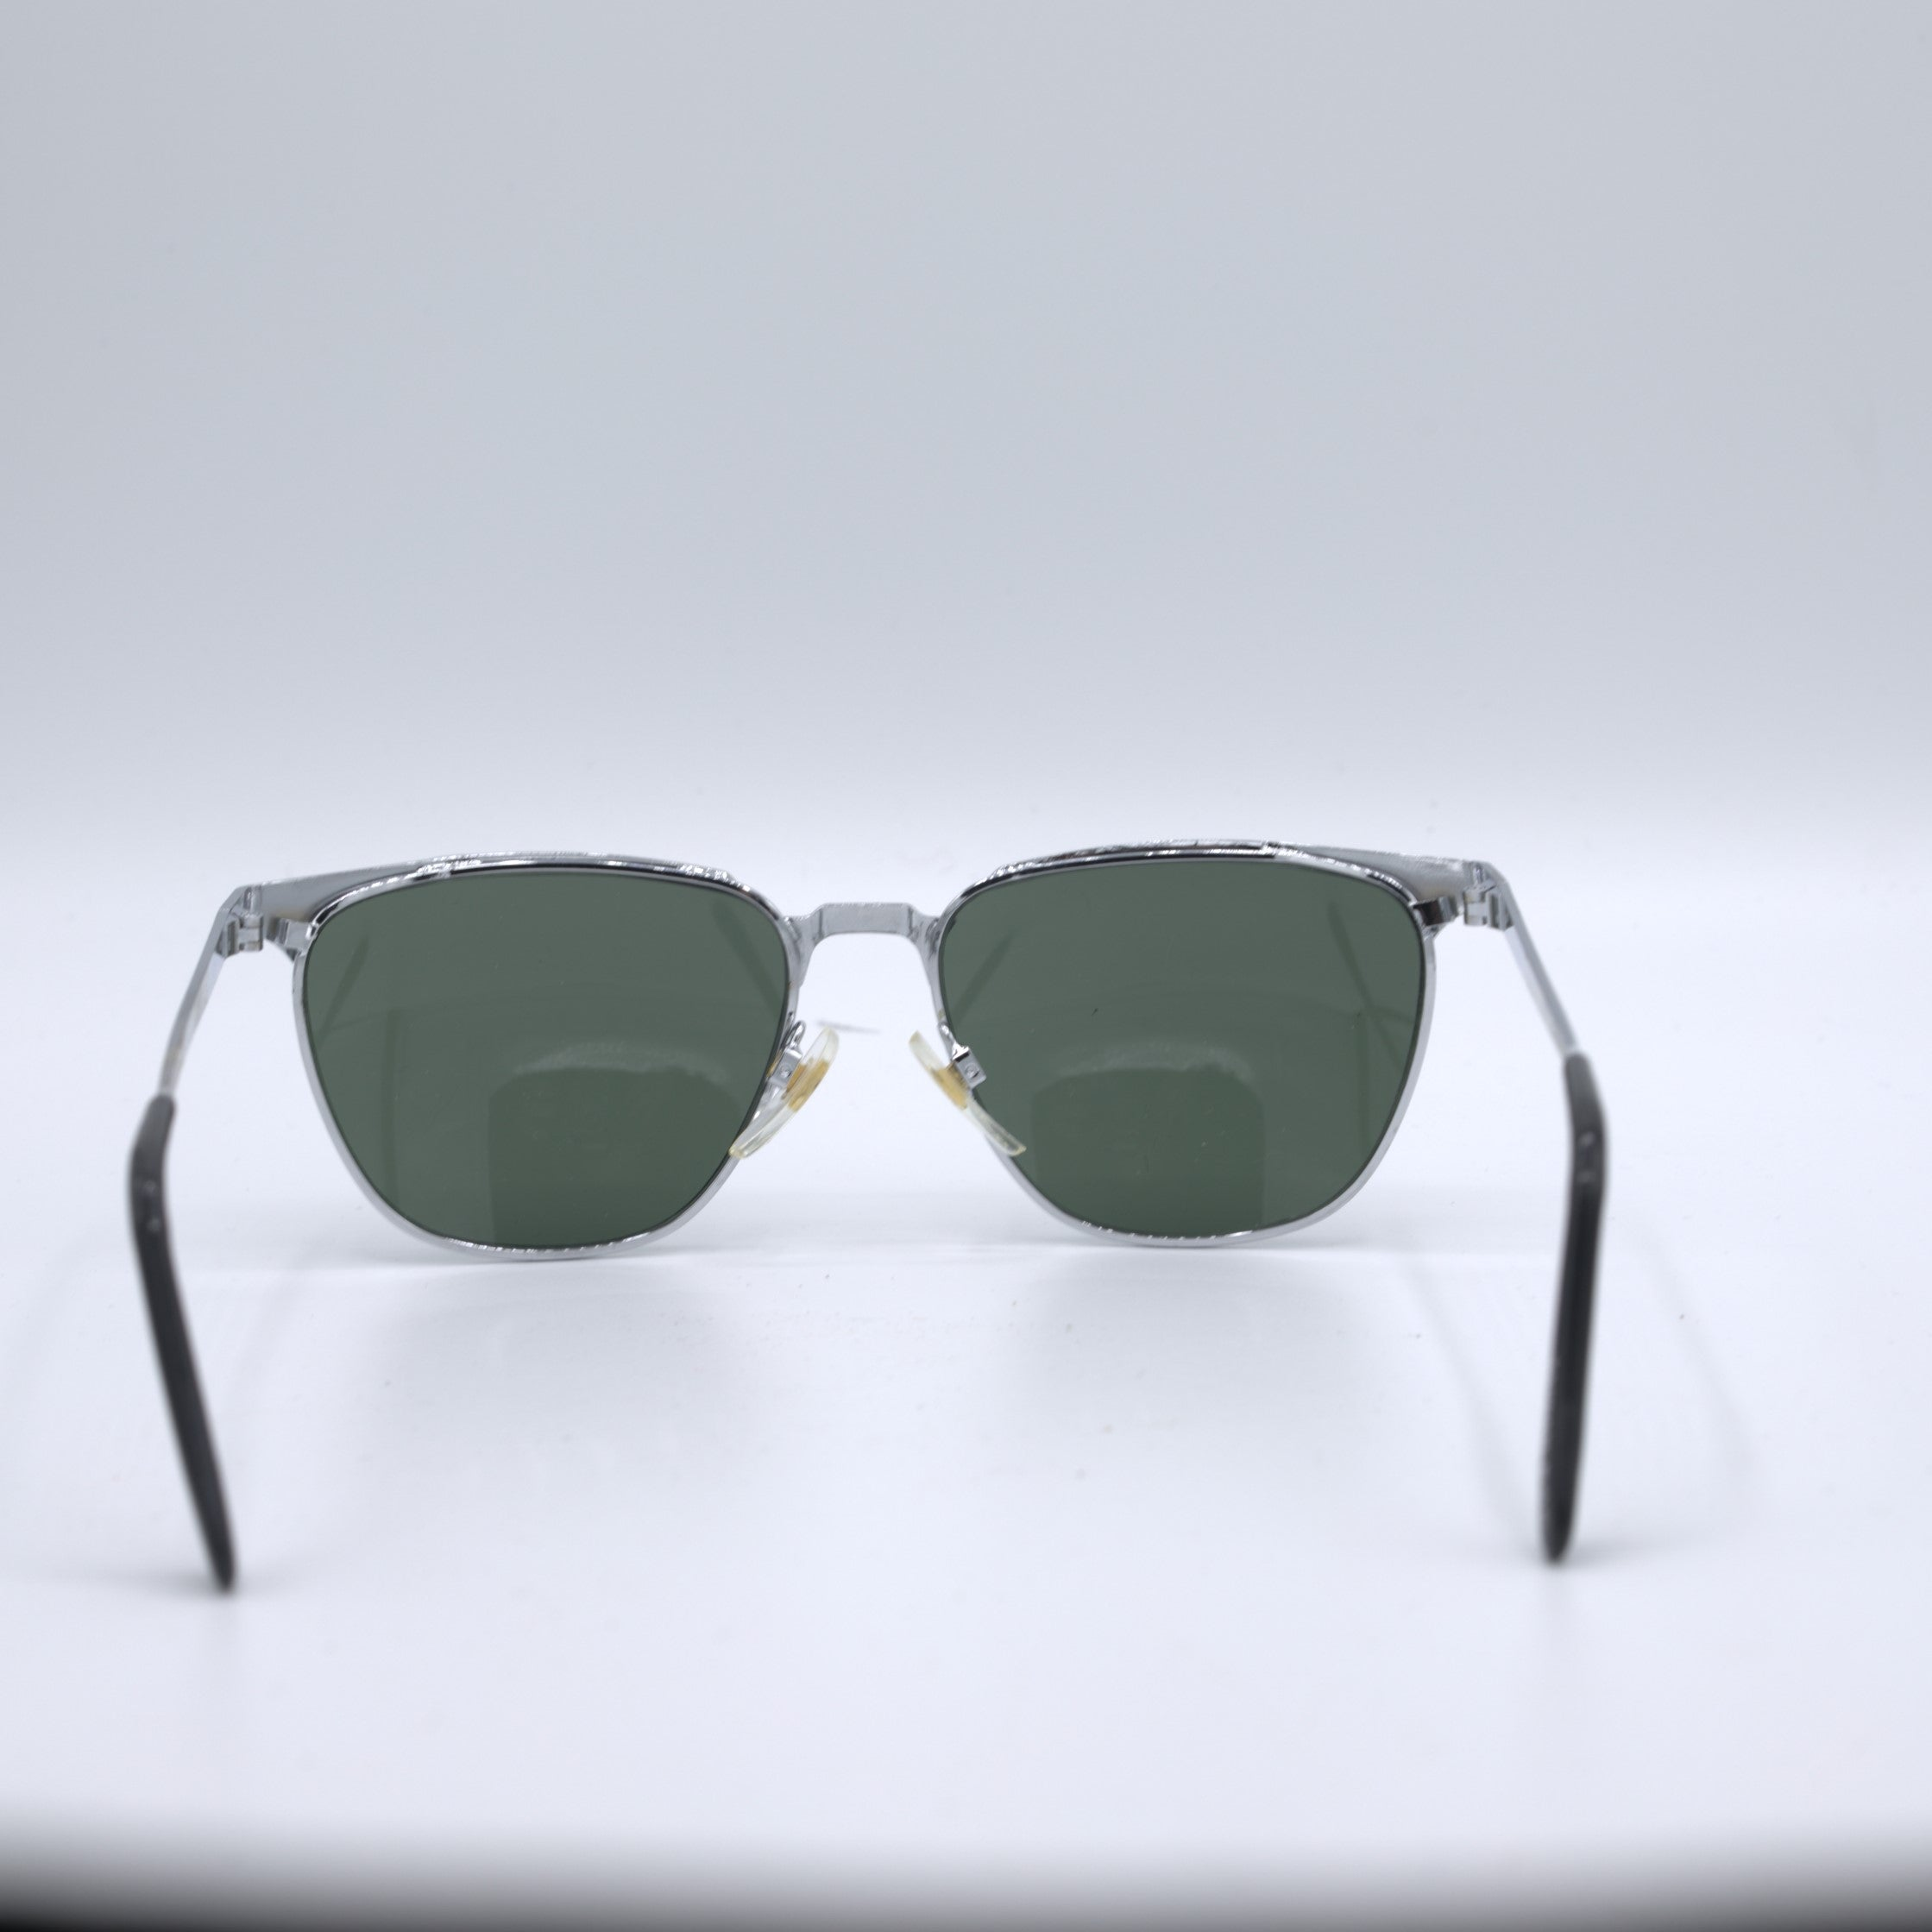 Vintage late 1950s deadstock sunglasses.